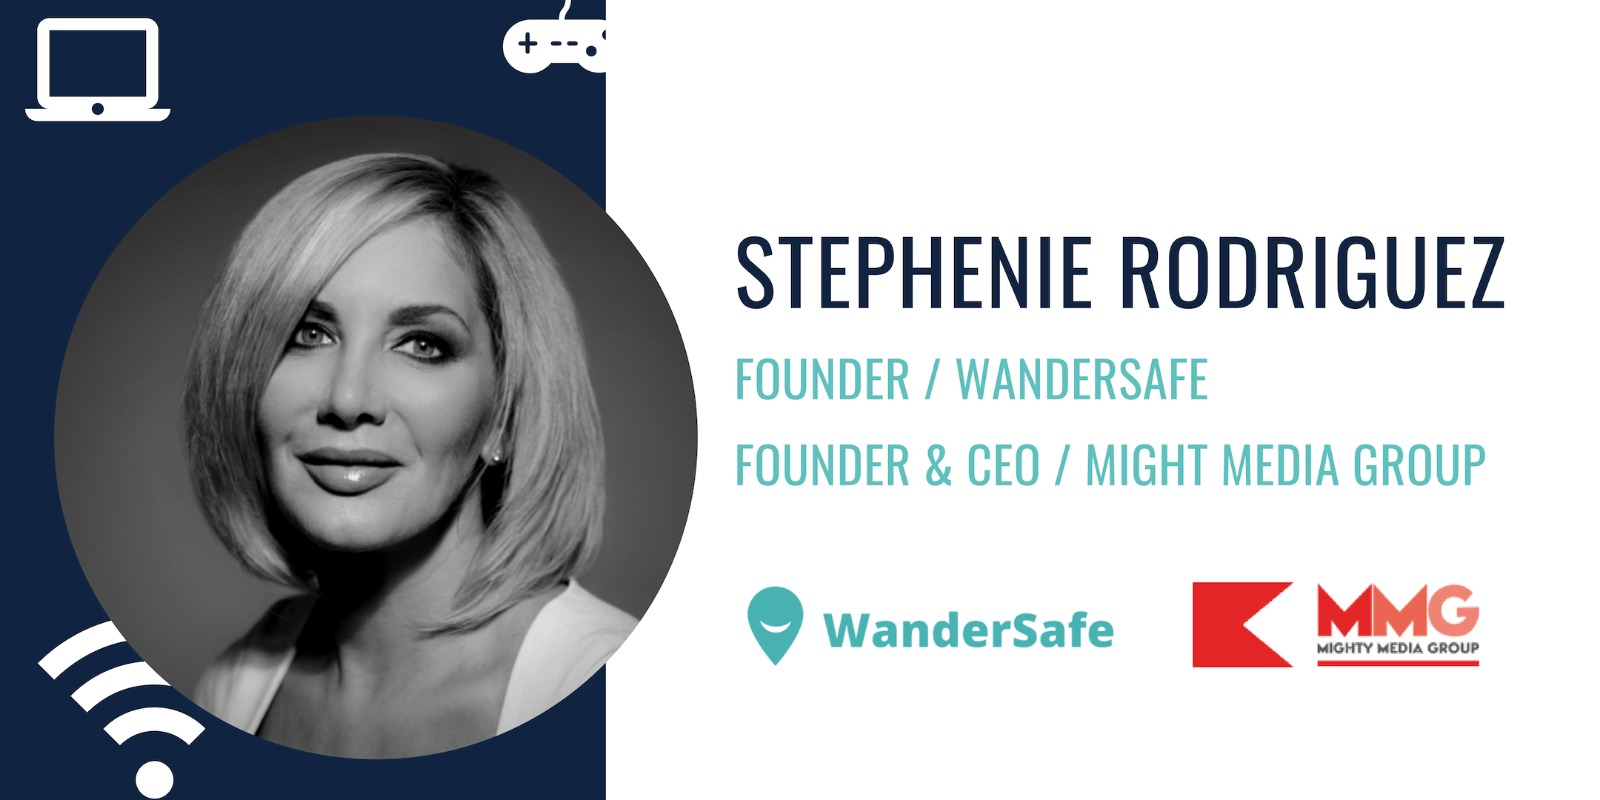 Stephenie is an award-winning serial entrepreneur, female founder, and she is passionate about personal safety. With more than 25 years in technology and more than 55 countries visited, Ms. Rodriguez is renown for her work in the travel sector working with big brands including Club Med, Sydney Airport, Cebu Pacific Air, and Accolade Wines as a digital transformation solution architect. In 2016, she founded JOZU for WOMEN Inc, and in 2017, launched WanderSafe.com with a mission of positively impacting 1 billion lives by 2025 and reducing human trafficking and illicit crimes. Partnered with CrimeStoppers International, Airline Ambassadors and other NGOs addressing this growing epidemic, Ms. Rodriguez launched Beacon by WanderSafe, an IoT safety ecosystem in Cannes in October 2018. Connect with her on social media @DigitalGodess.